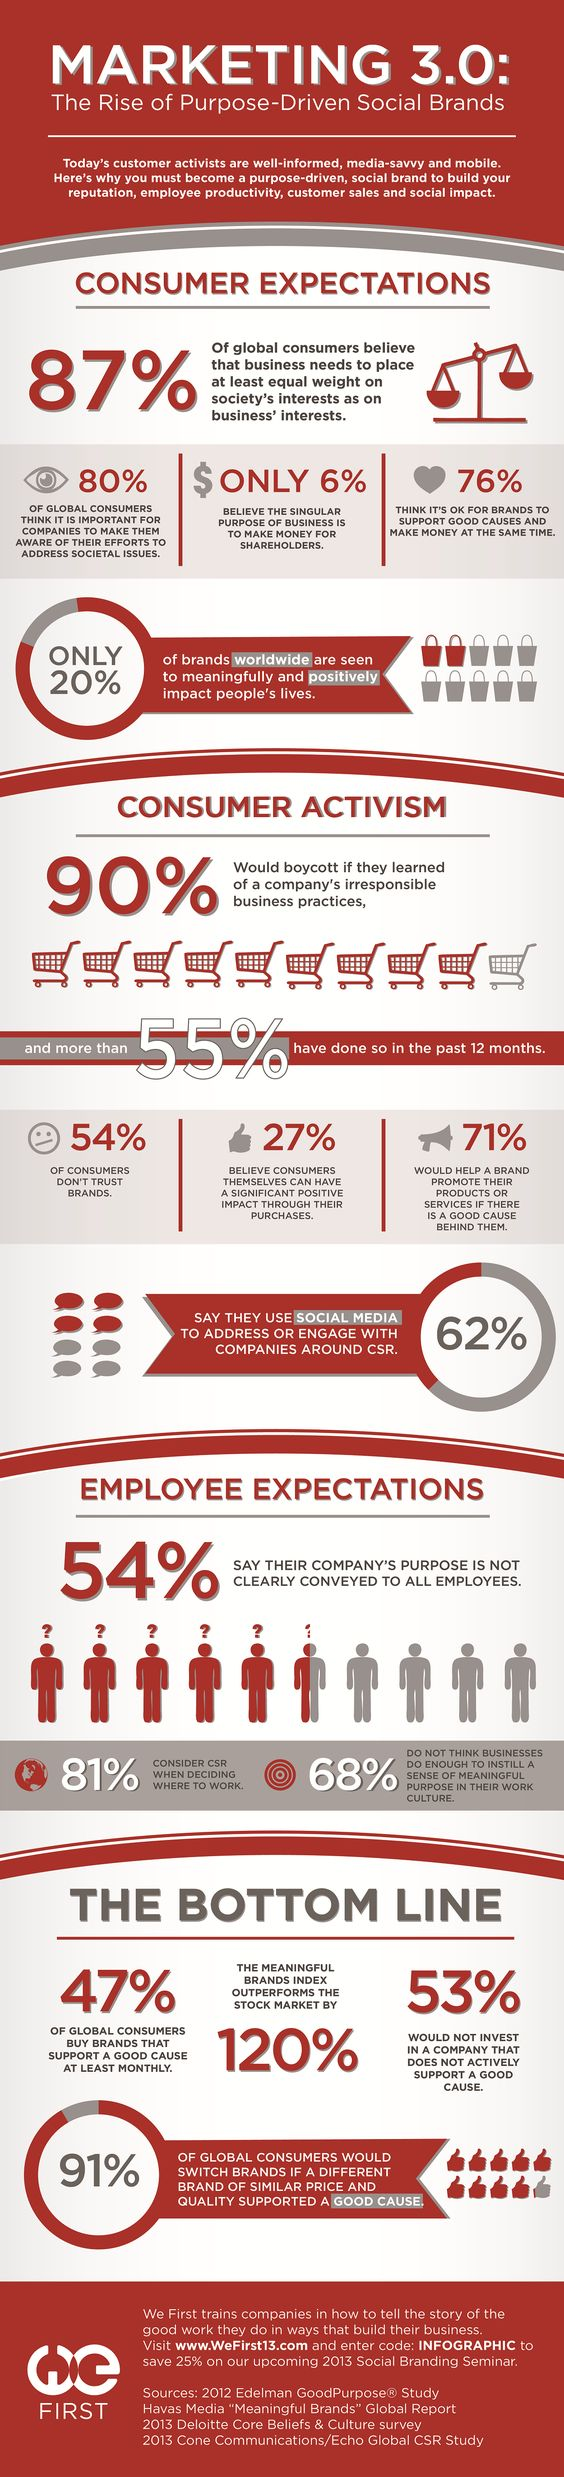 Marketing 3-0_The Rise of Purpose Driven Social Brands - Infographic.jpg